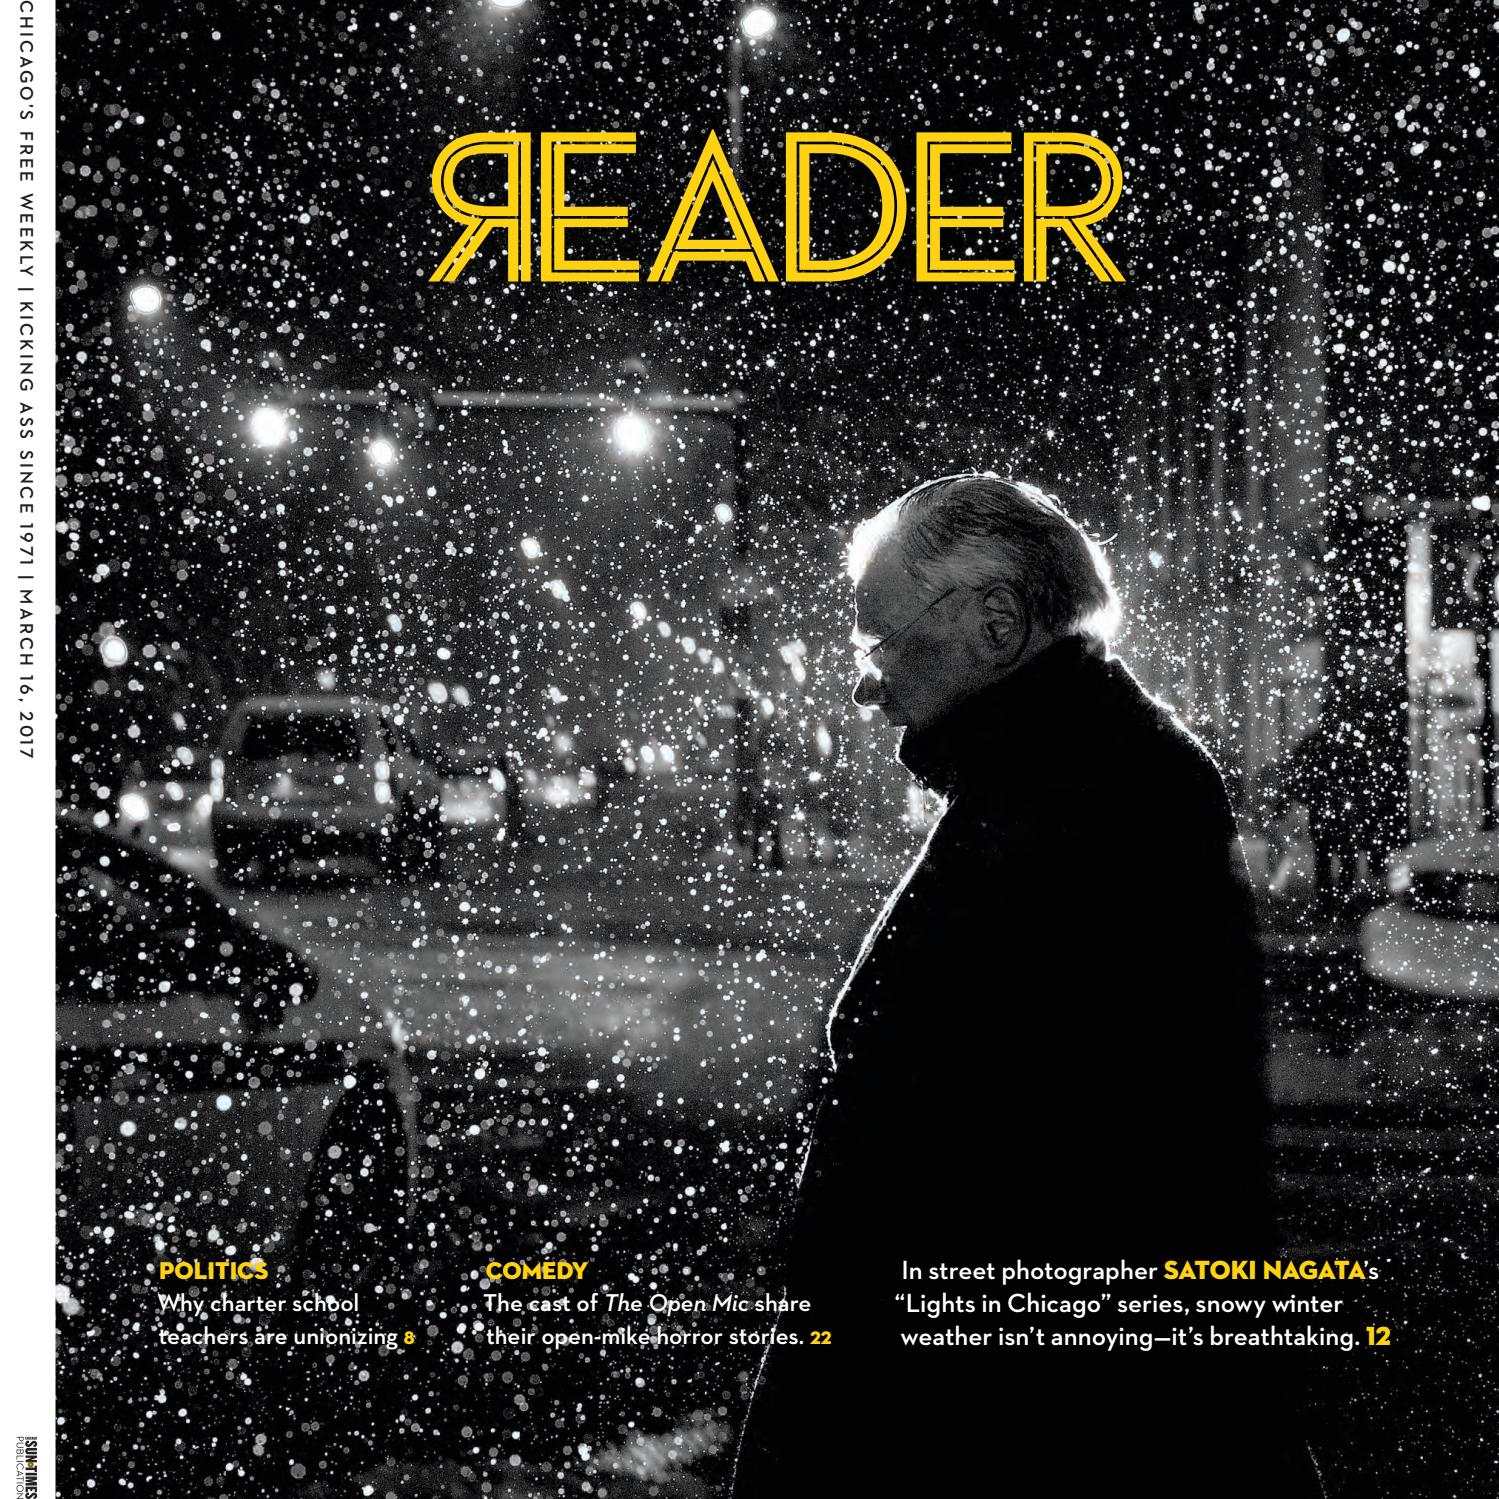 065e0a9f7 Print Issue of March 16, 2017 (Volume 46, Number 23) by Chicago Reader -  issuu